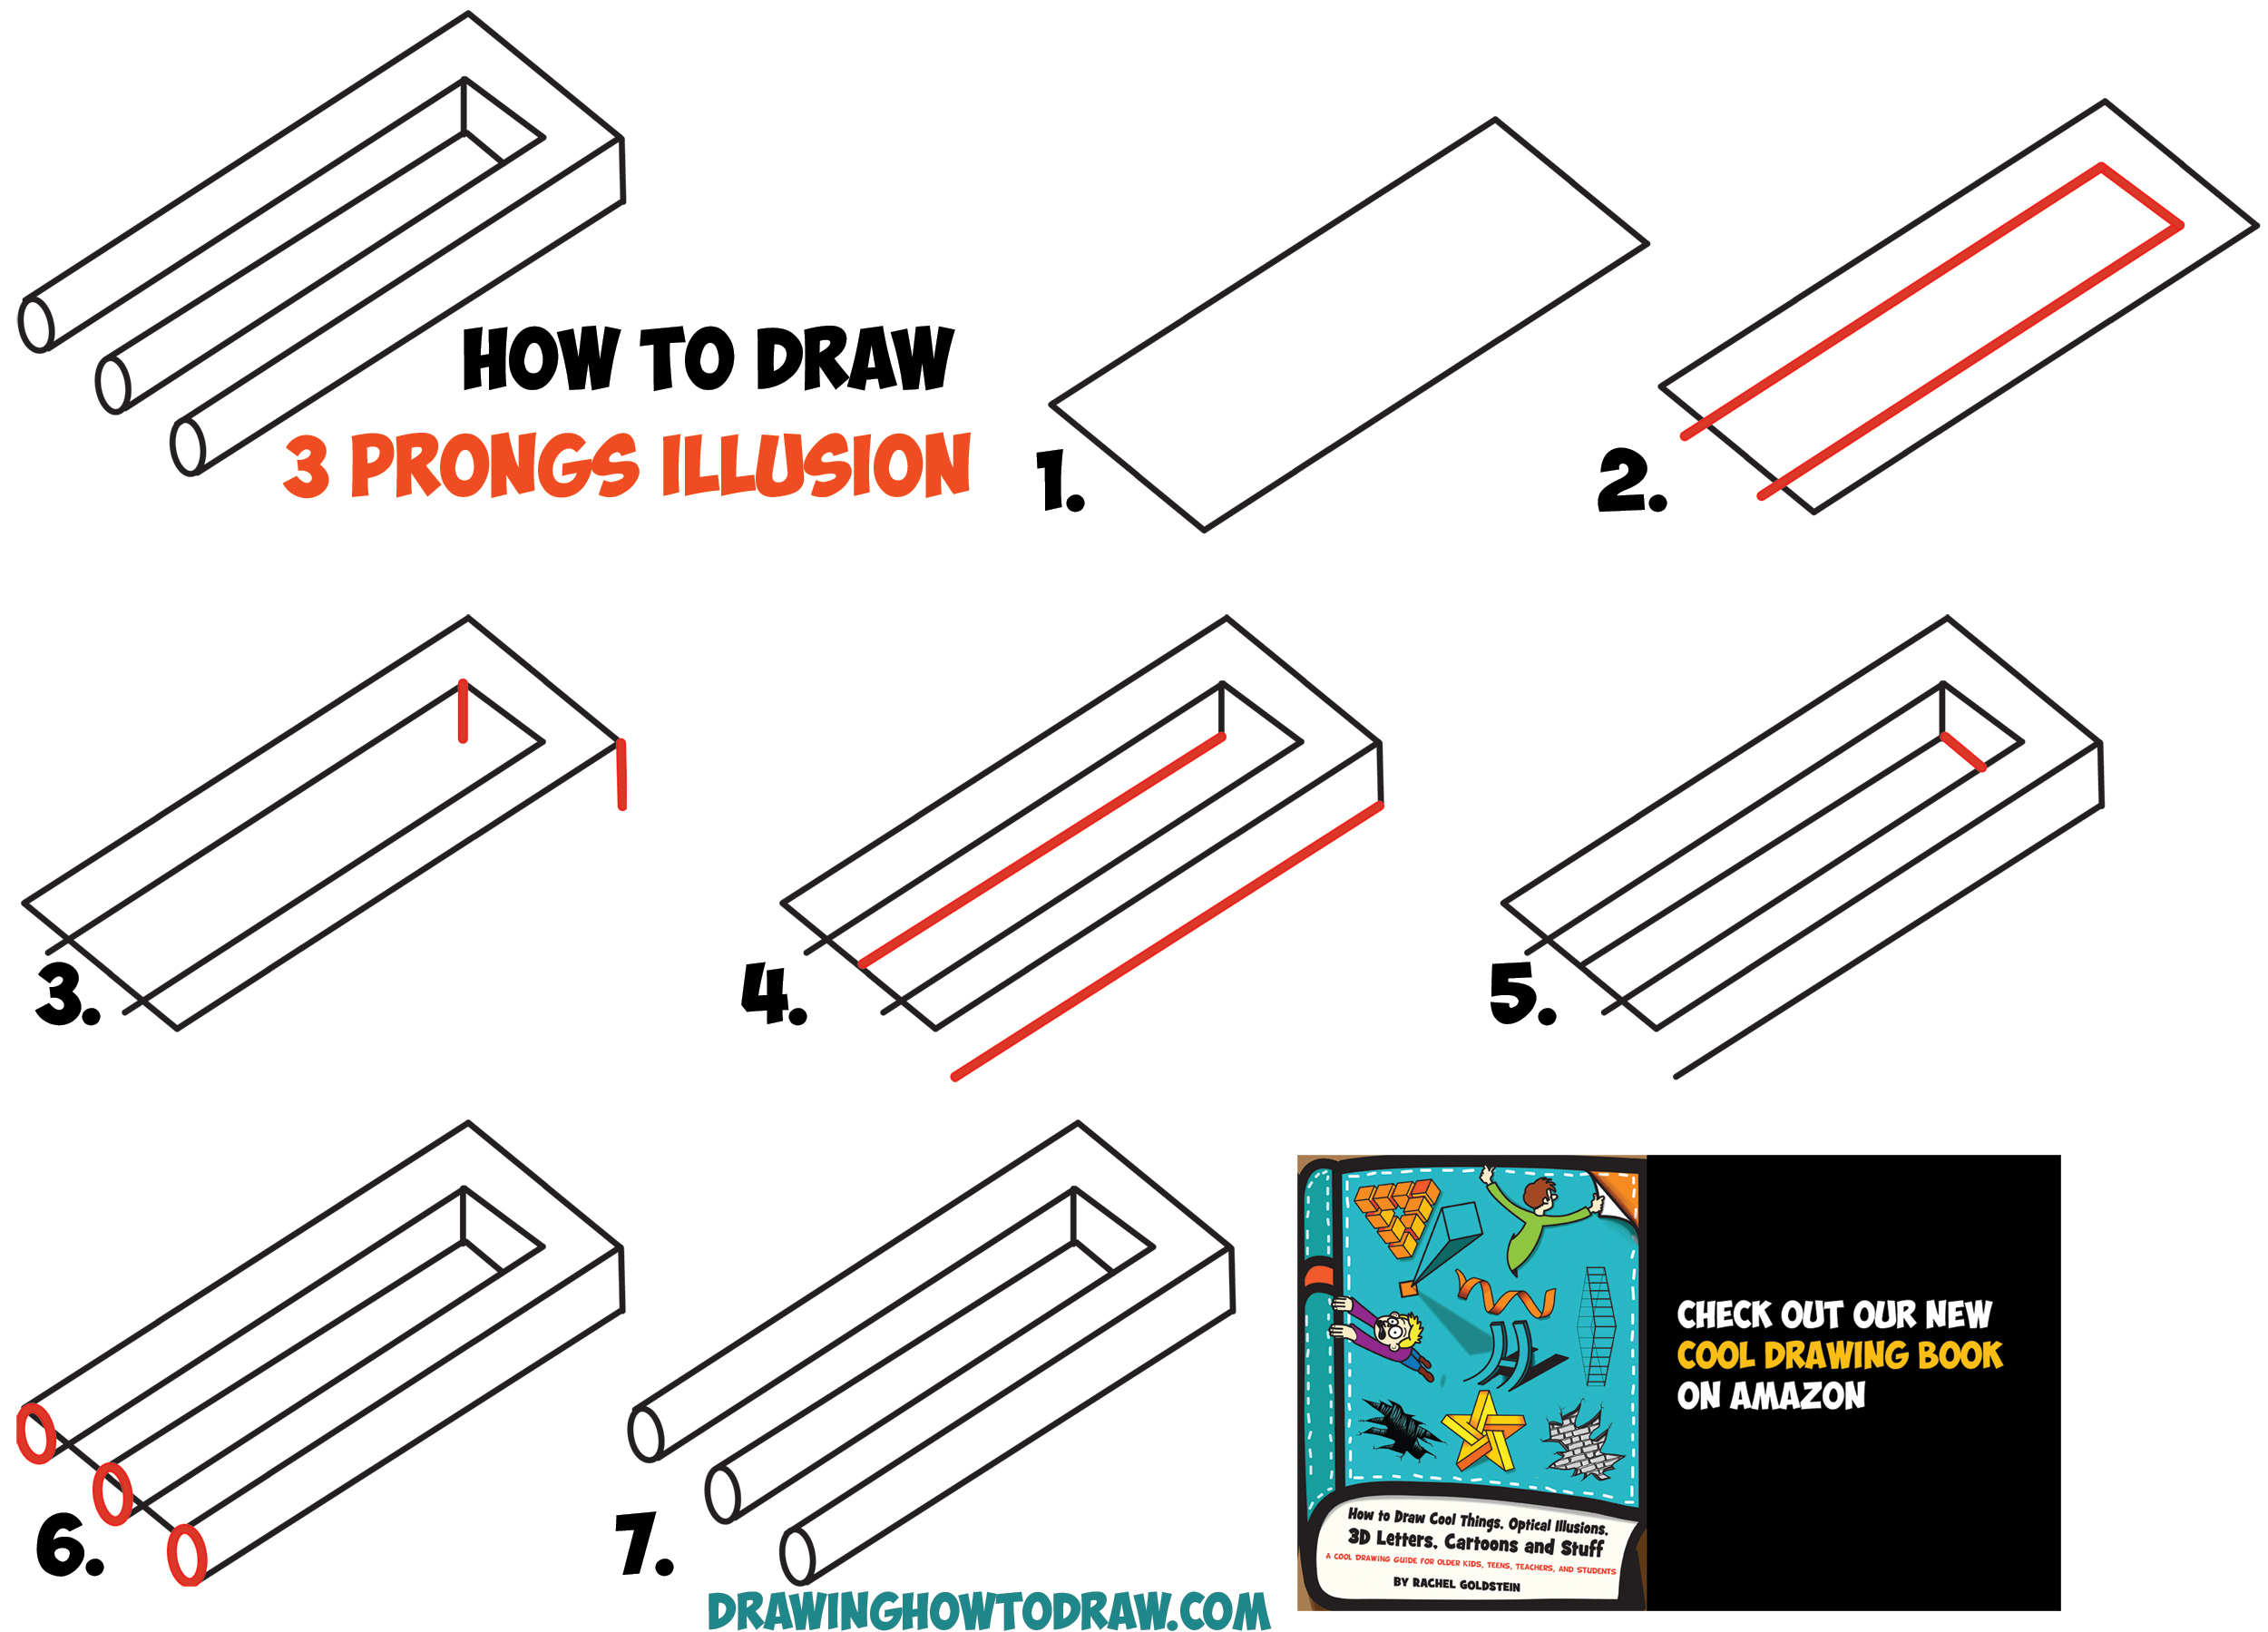 illusions optical draw step easy drawing illusion drawings 3d shapes tutorial prongs impossible trick simple cool steps pencil beginners drawinghowtodraw